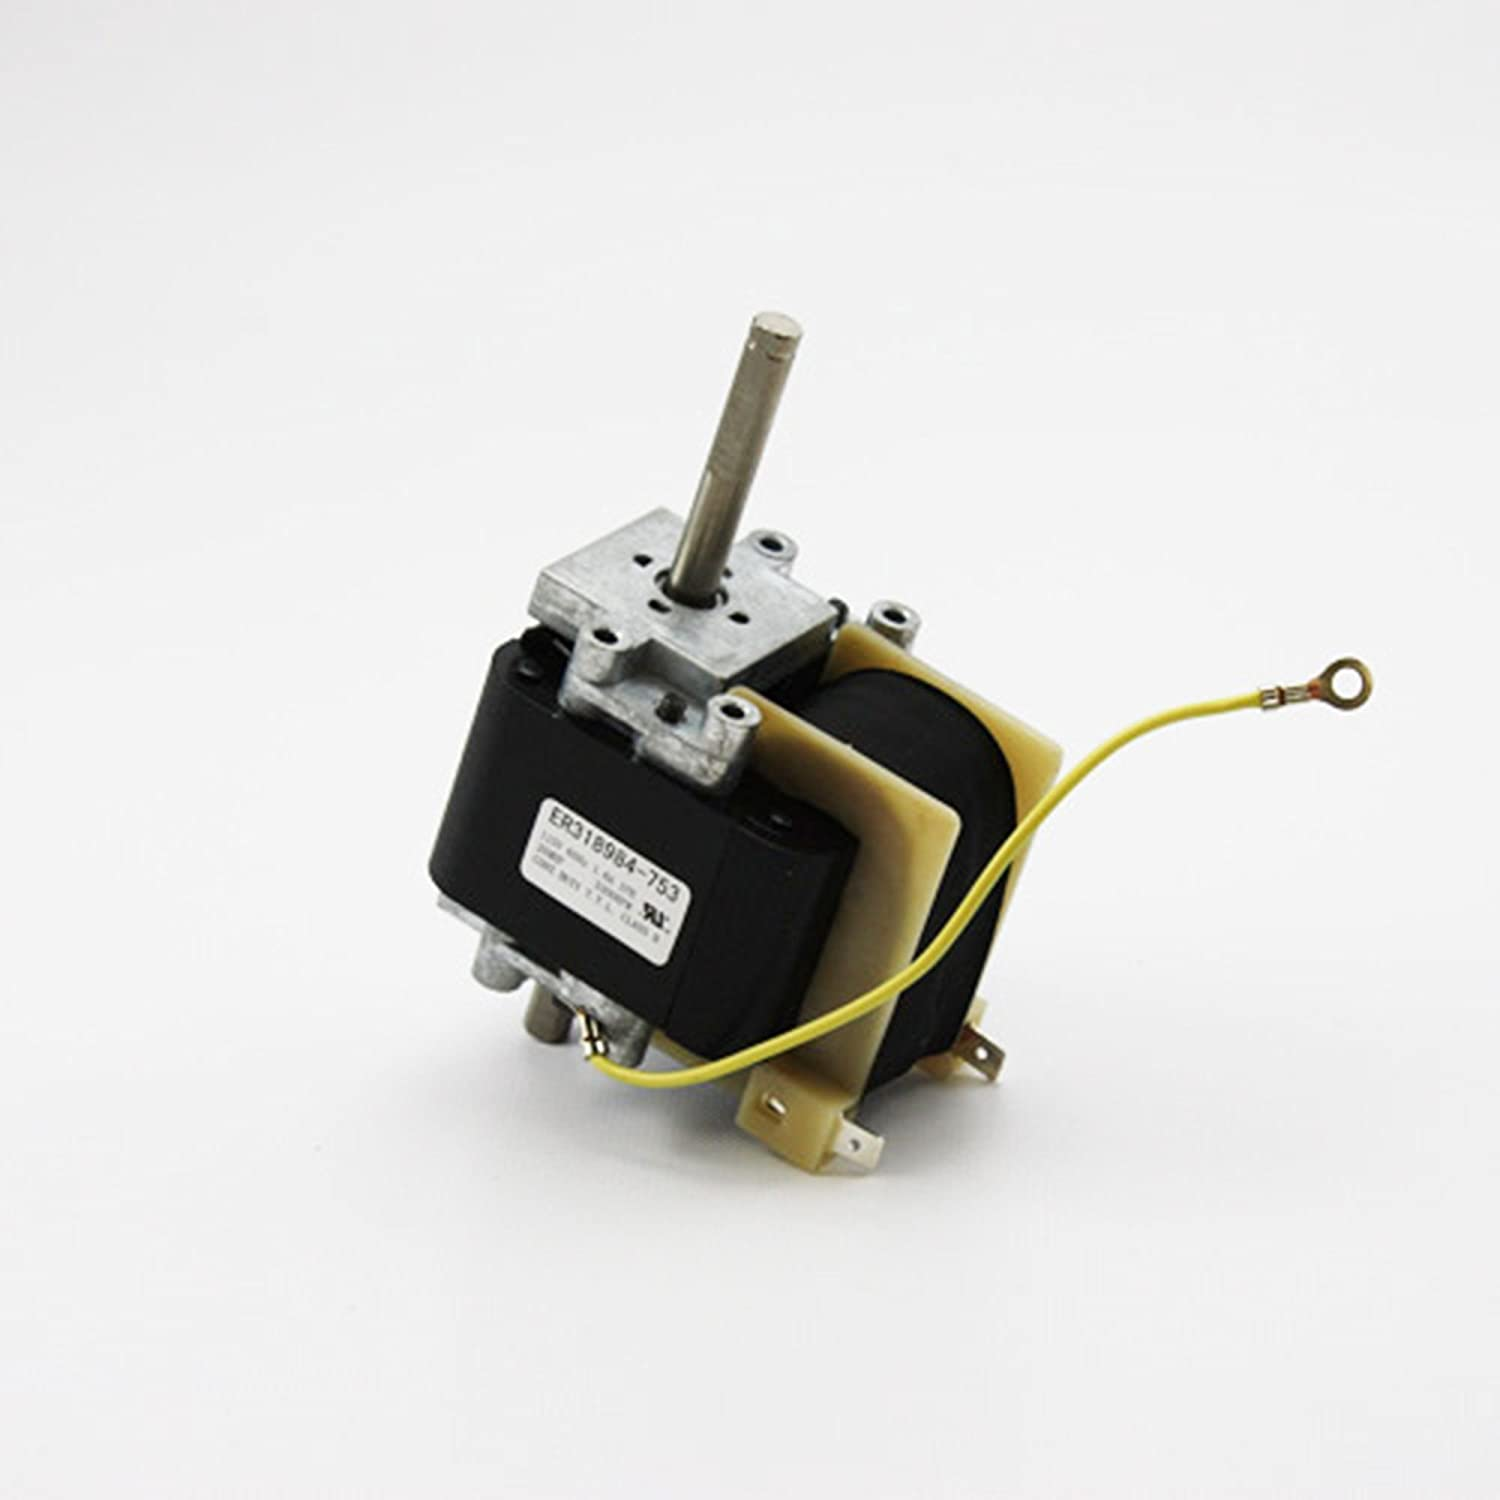 Welcome I Have A Picture For Hvac Blower Motor Wiring Anything Else Carrier Inducer Draft Replacement Part Replaces 318984 753 10704 Tj318984 Ap5634784 318984753 323435 730 321373 712 321373712